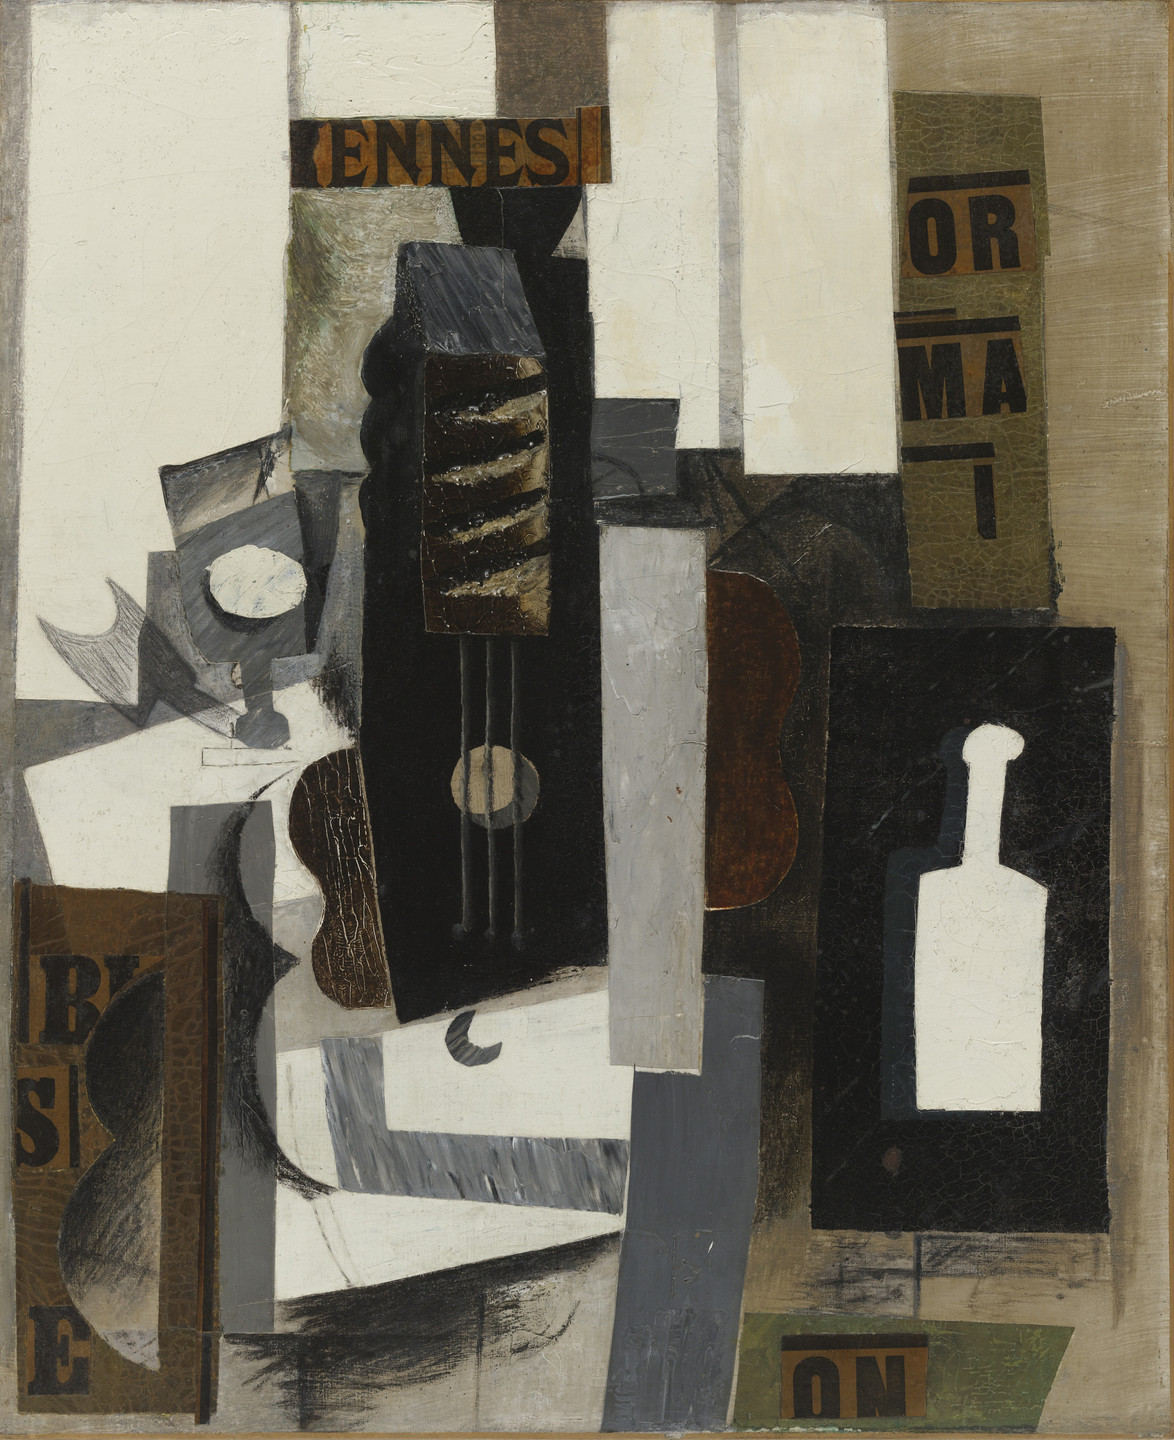 Pablo Picasso. Glass, Guitar, and Bottle. Paris, early 1913